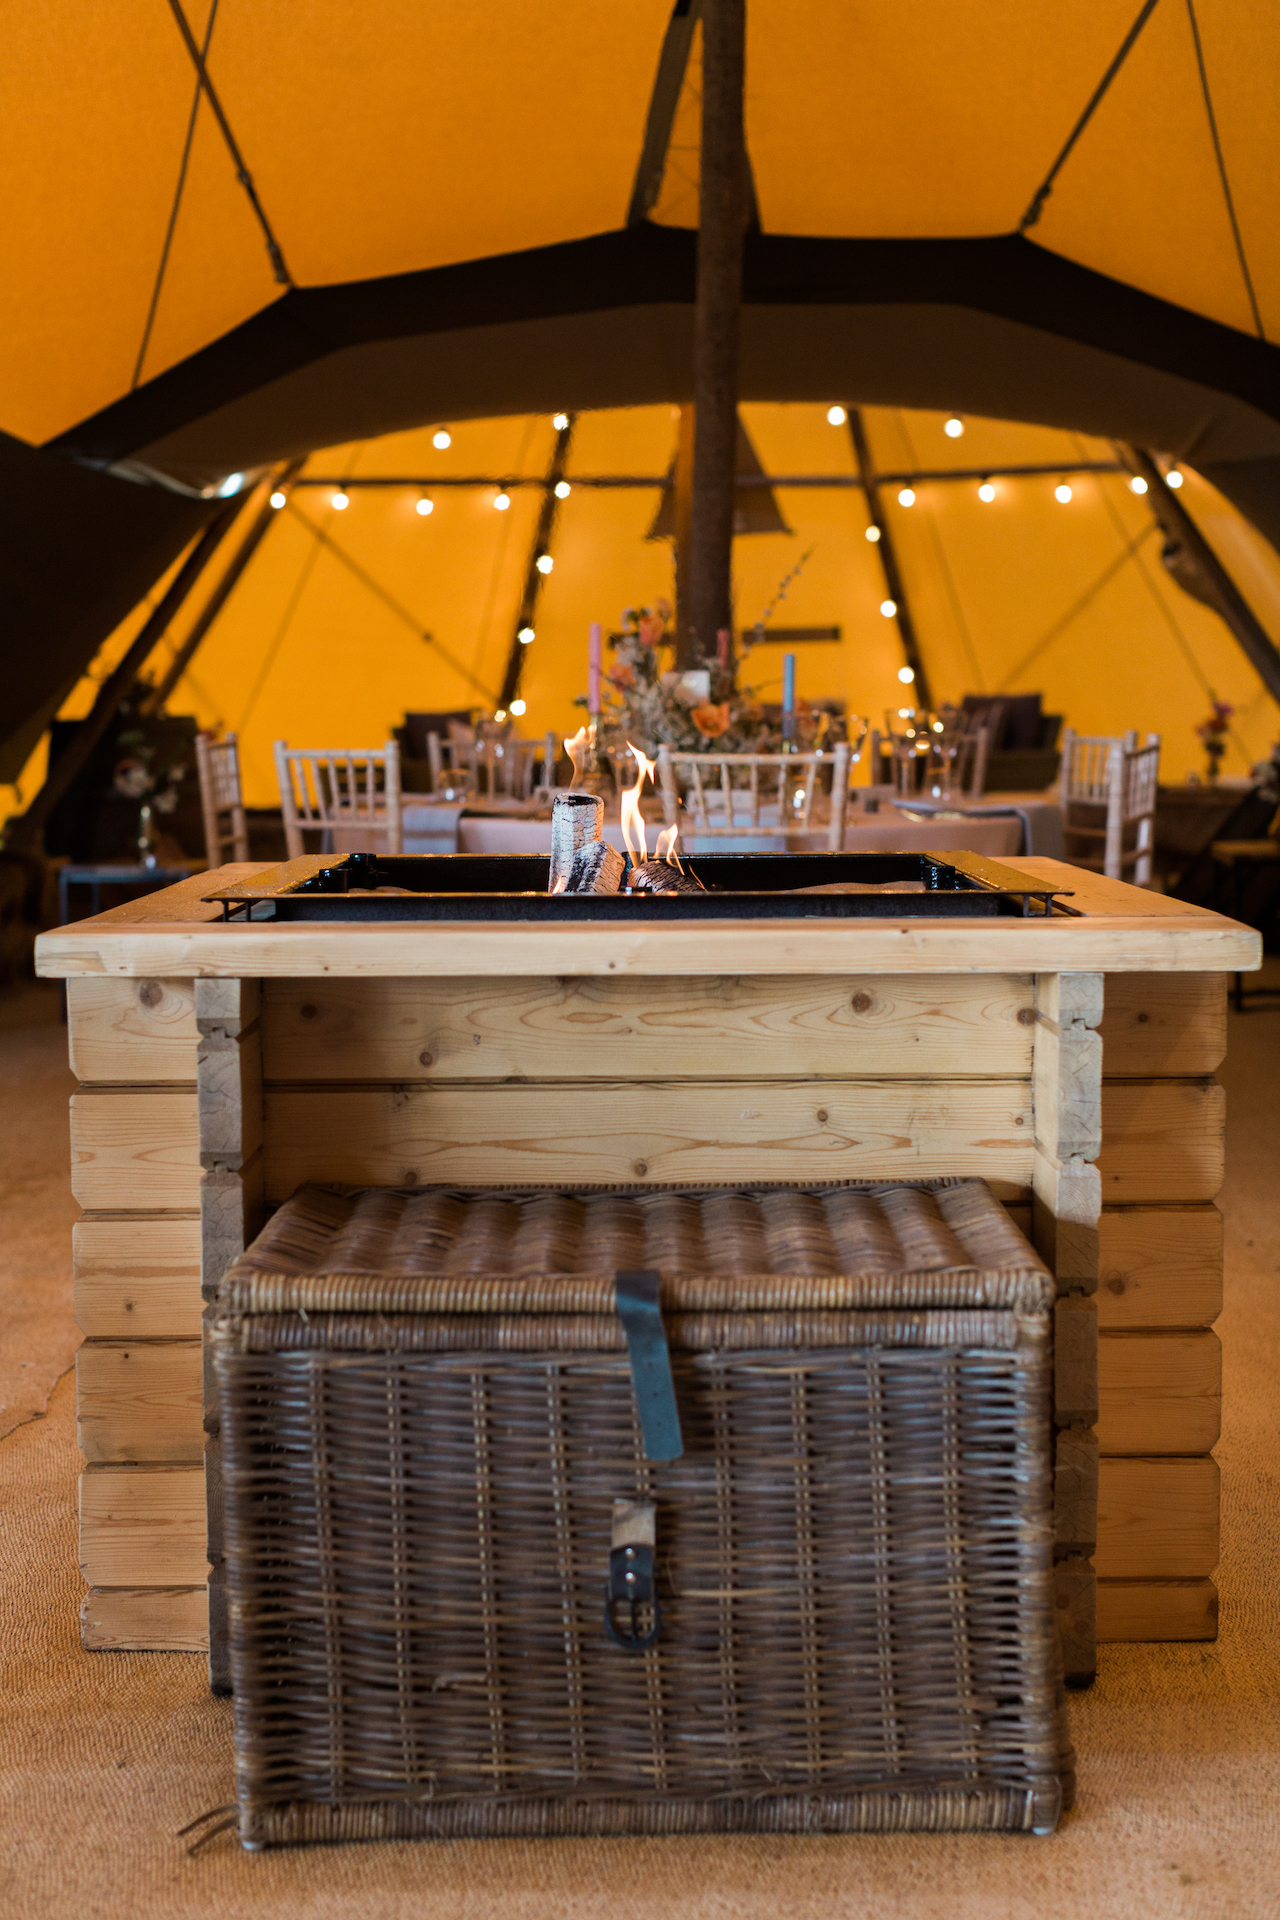 PapaKåta Spring Open Weekend Teepee captured by Lucy Davenport Photography: Teepee Open Fireplace and Log Basket